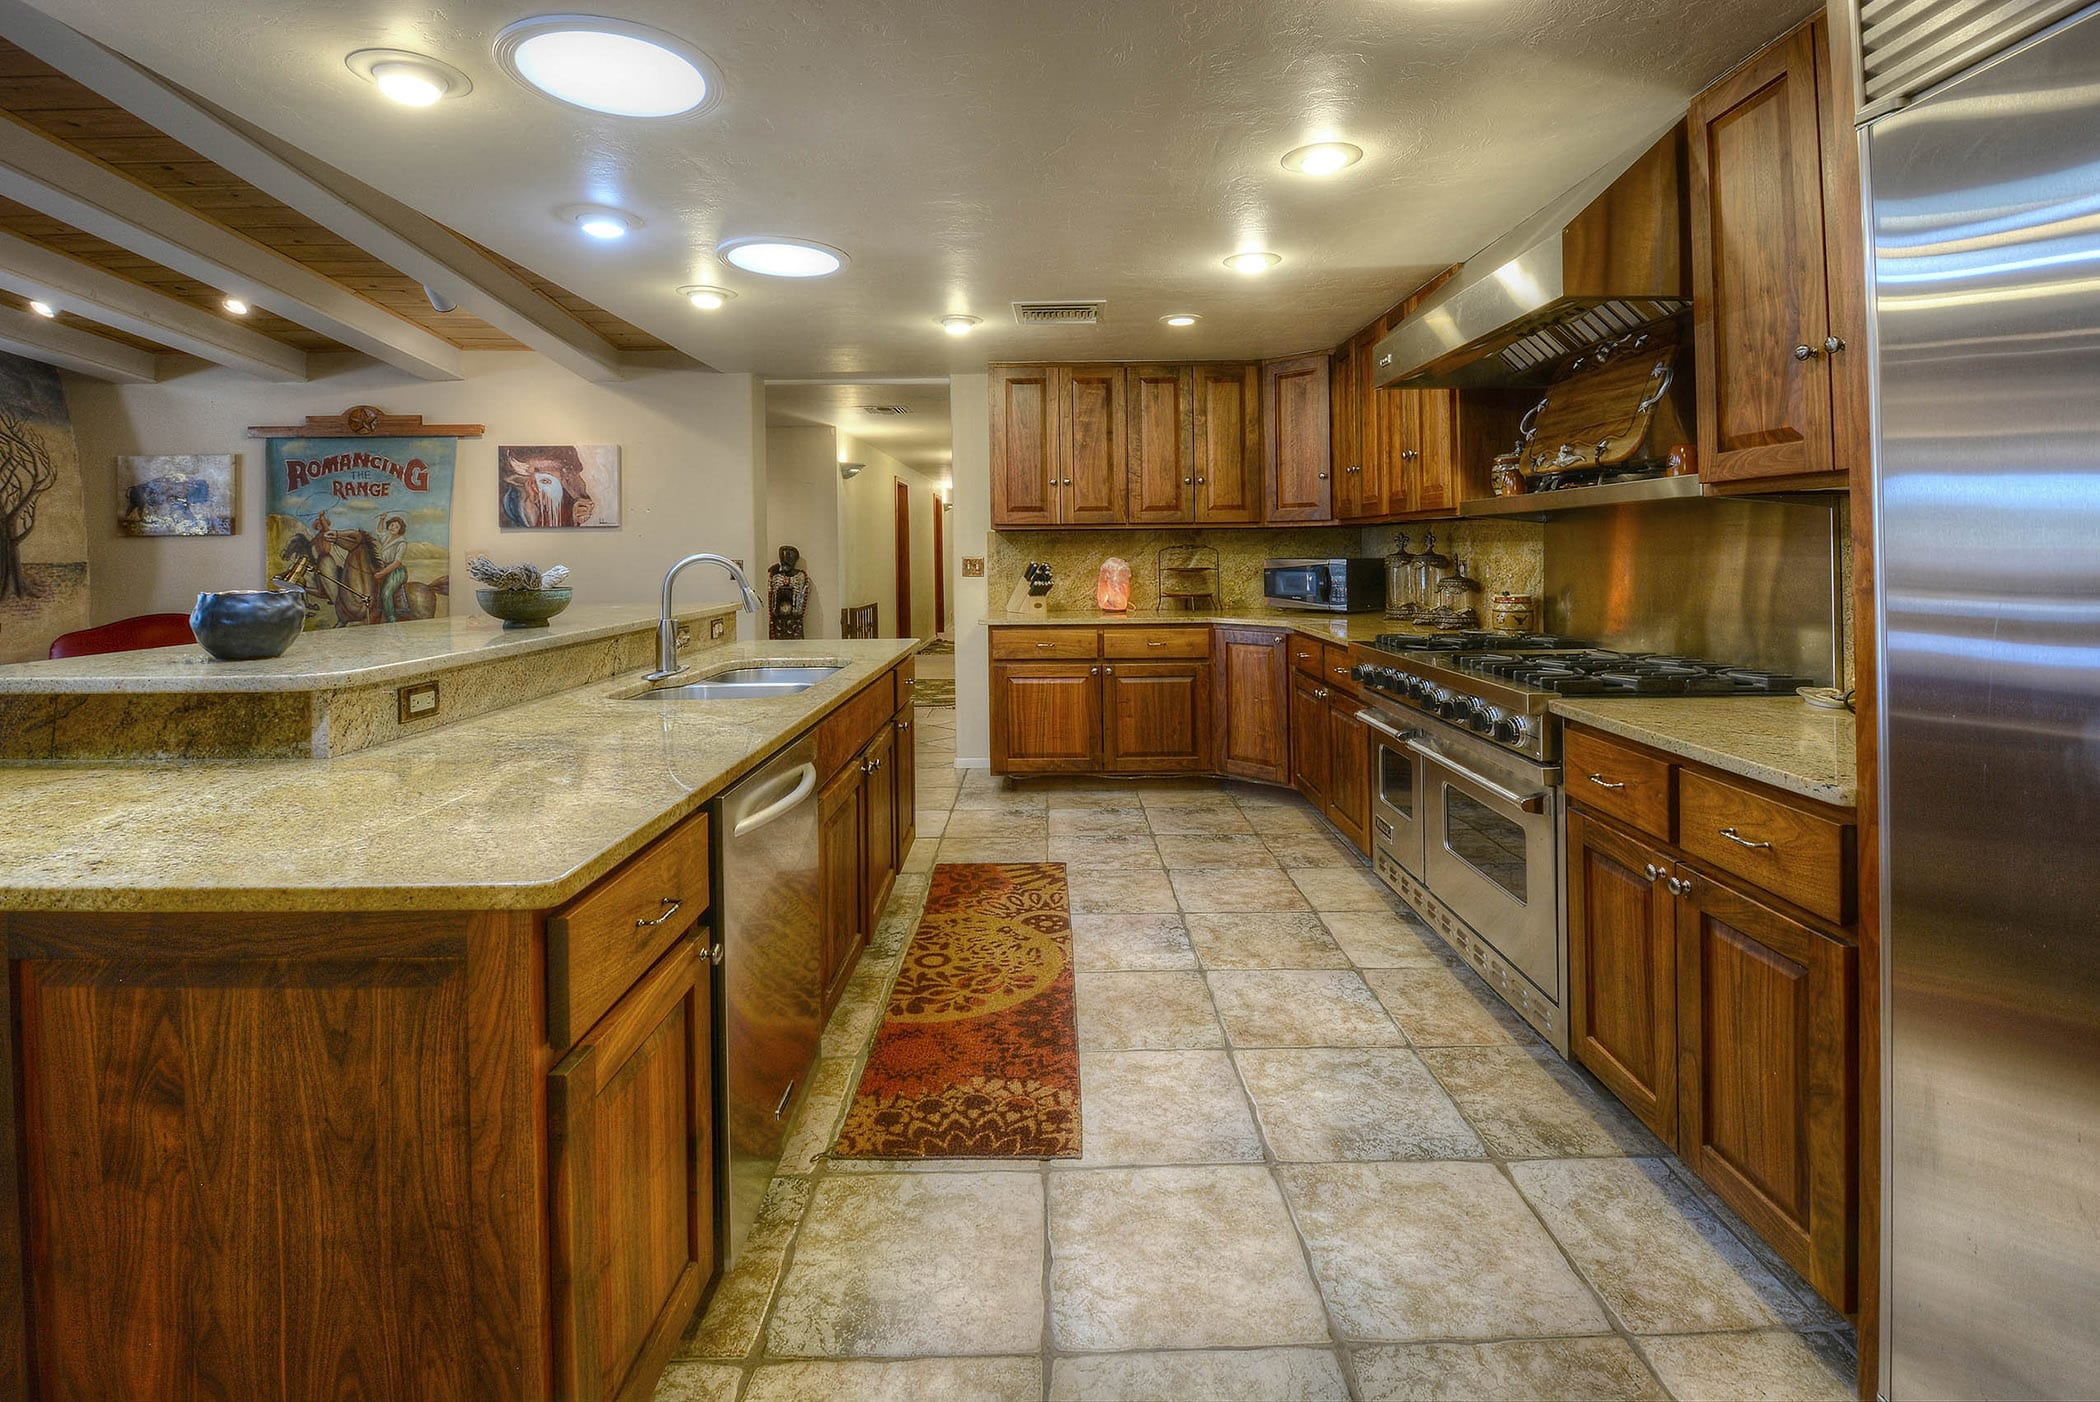 Prepare hearty meals for the whole group in the fully equipped kitchen.